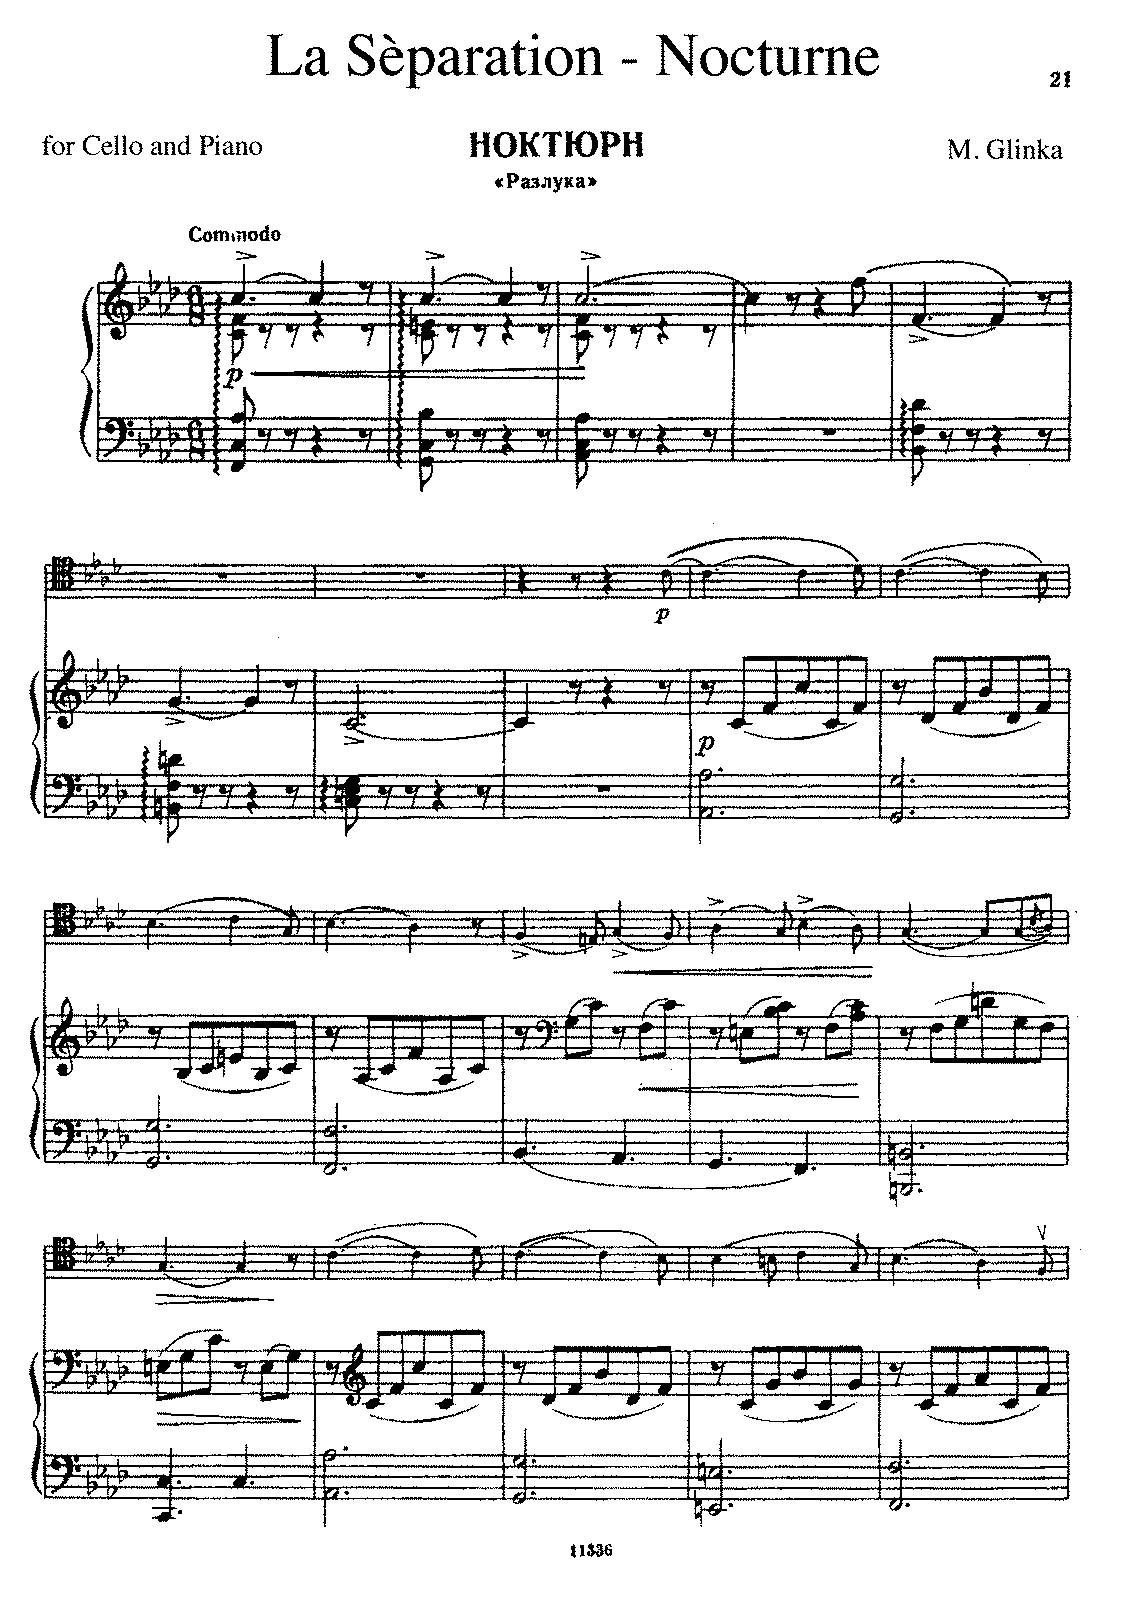 PMLP17597-Glinka - La Separation - Nocturne Cello Piano.pdf